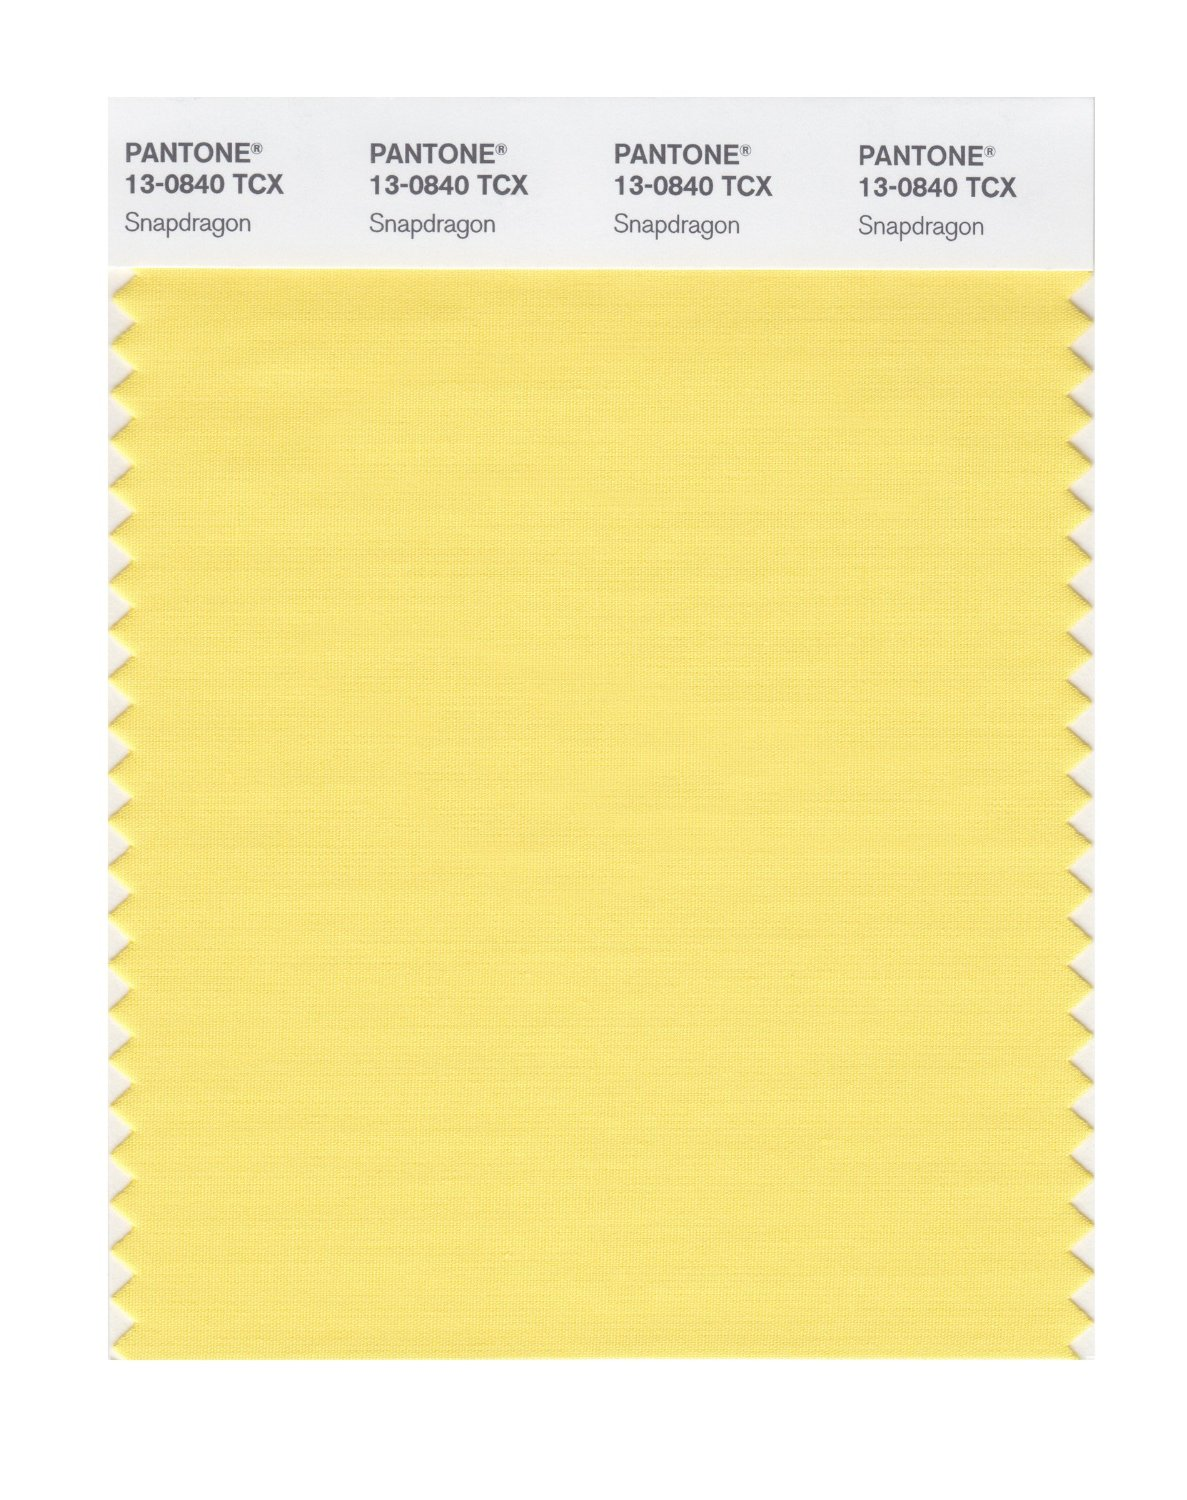 Pantone Smart Swatch 13-0840 Snapdragon